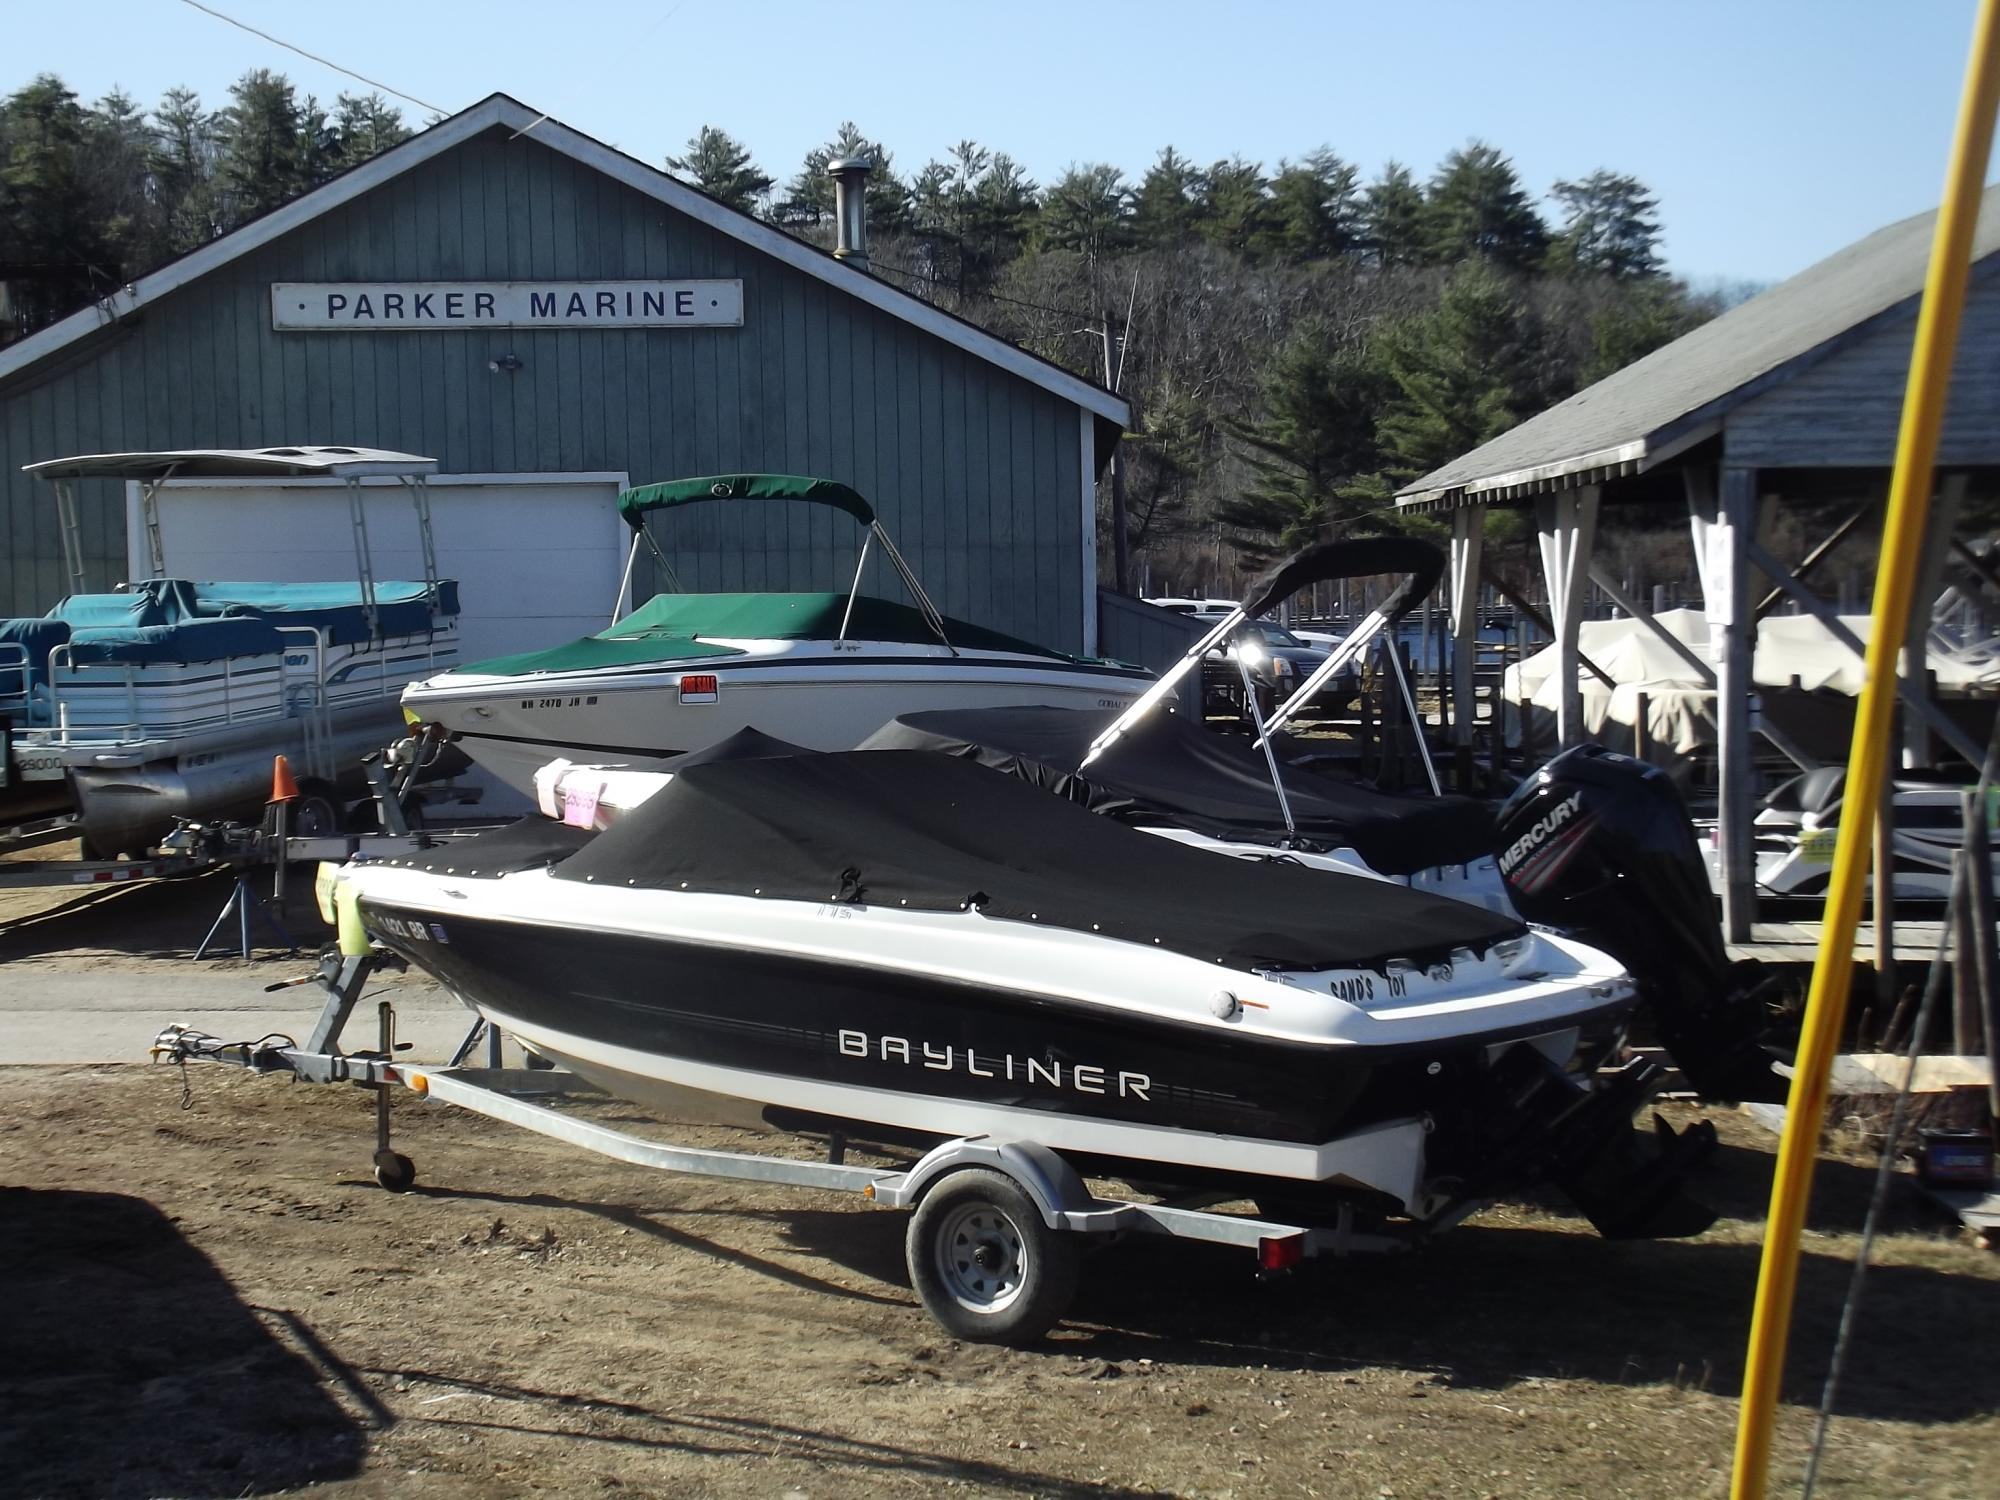 New_Bentley_boats_and_misc_yard_pic61296.JPG